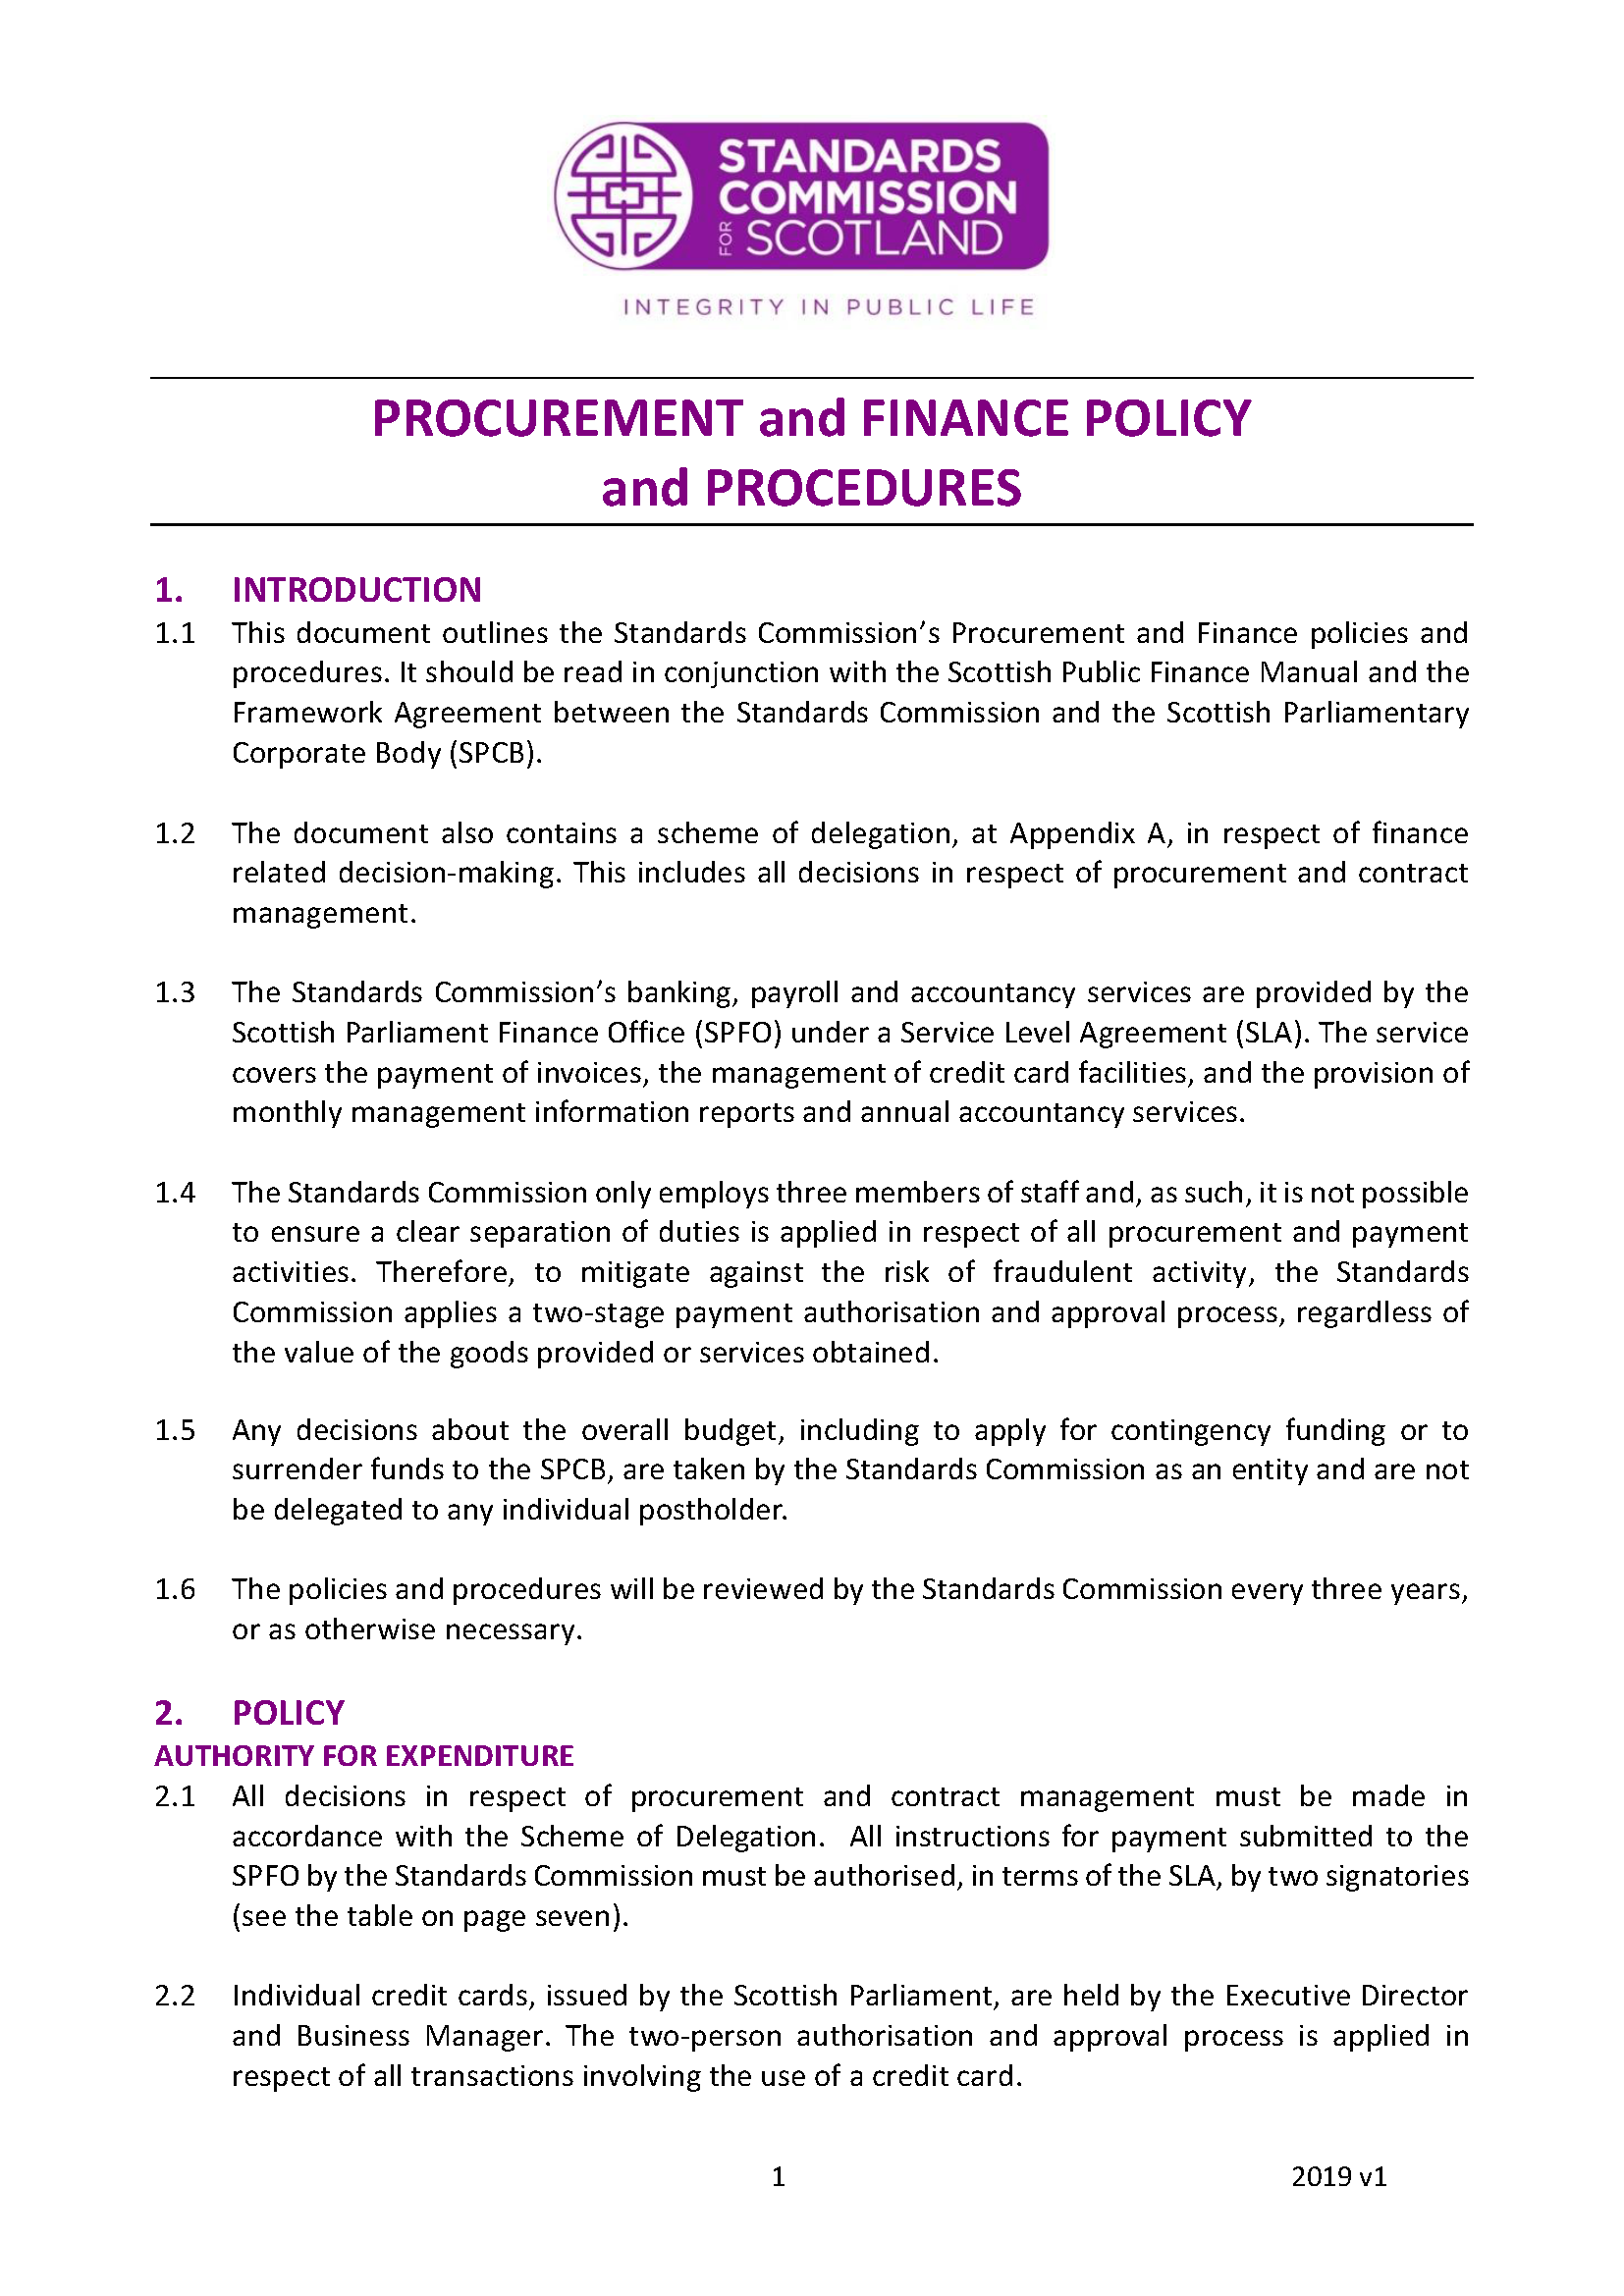 Procurement and Finance Policy and Procedures